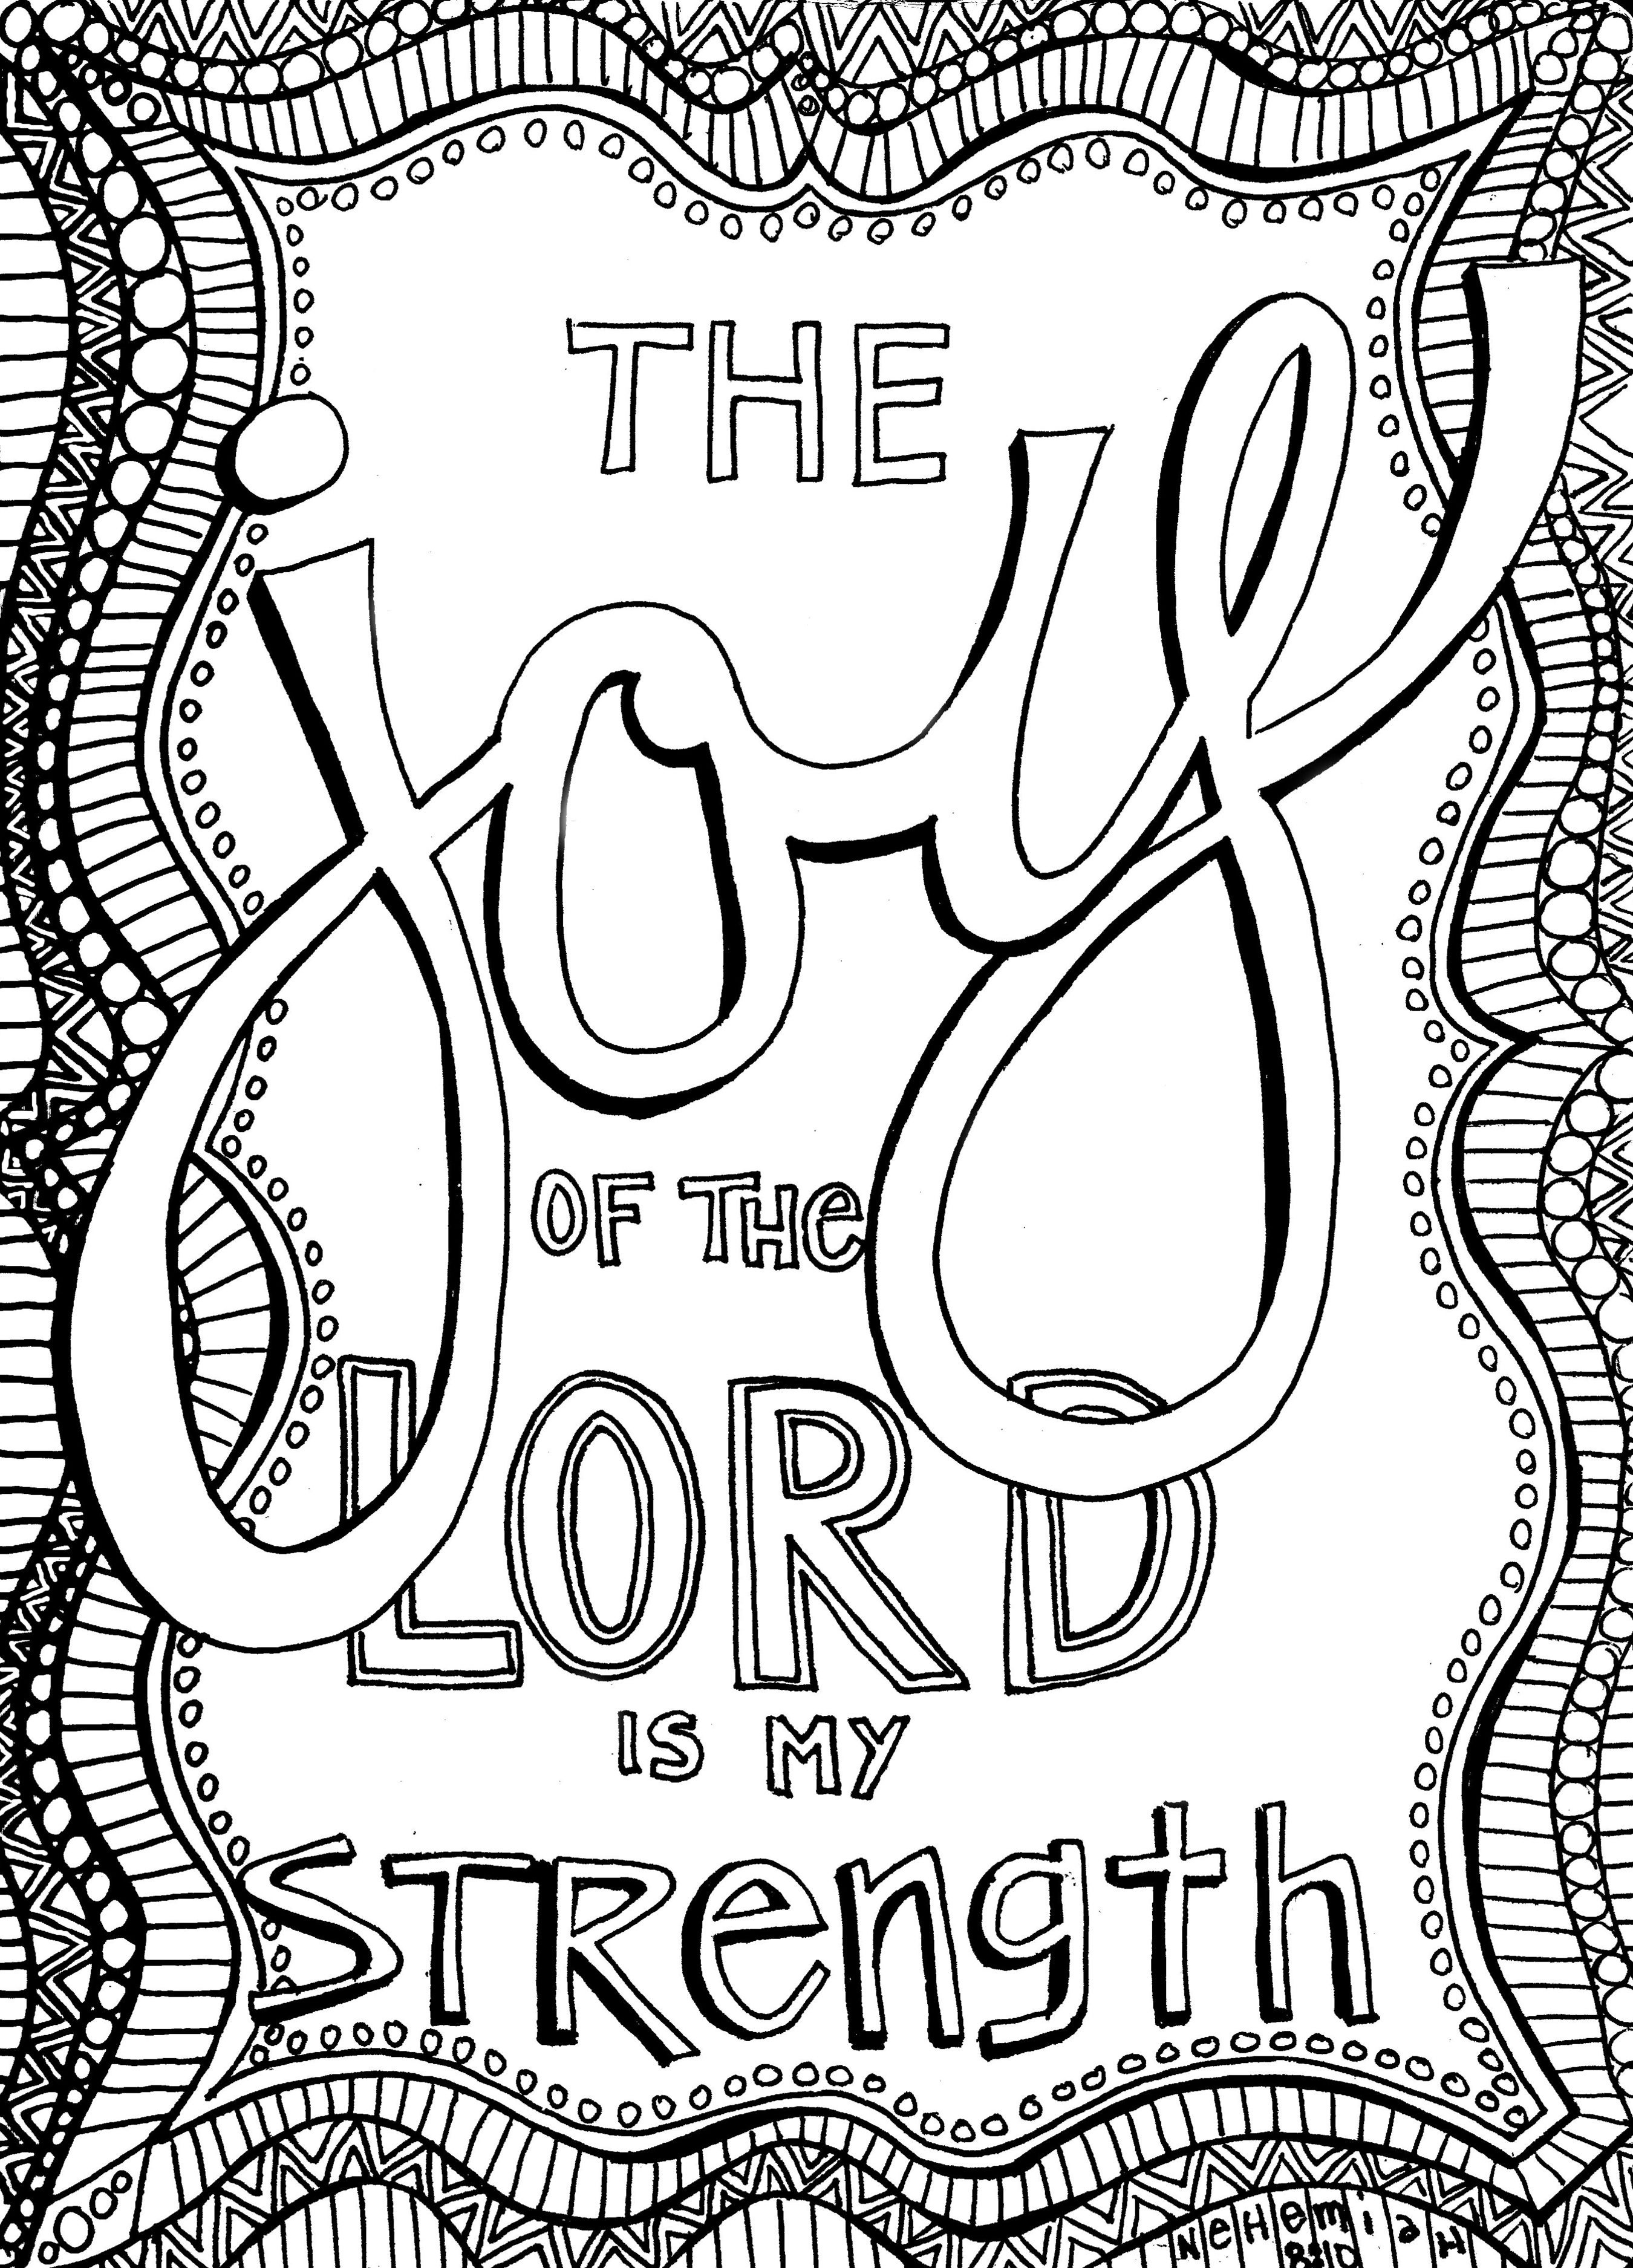 Free Christian Coloring Pages For Adults - Roundup | Bible - Free - Free Printable Christian Coloring Pages